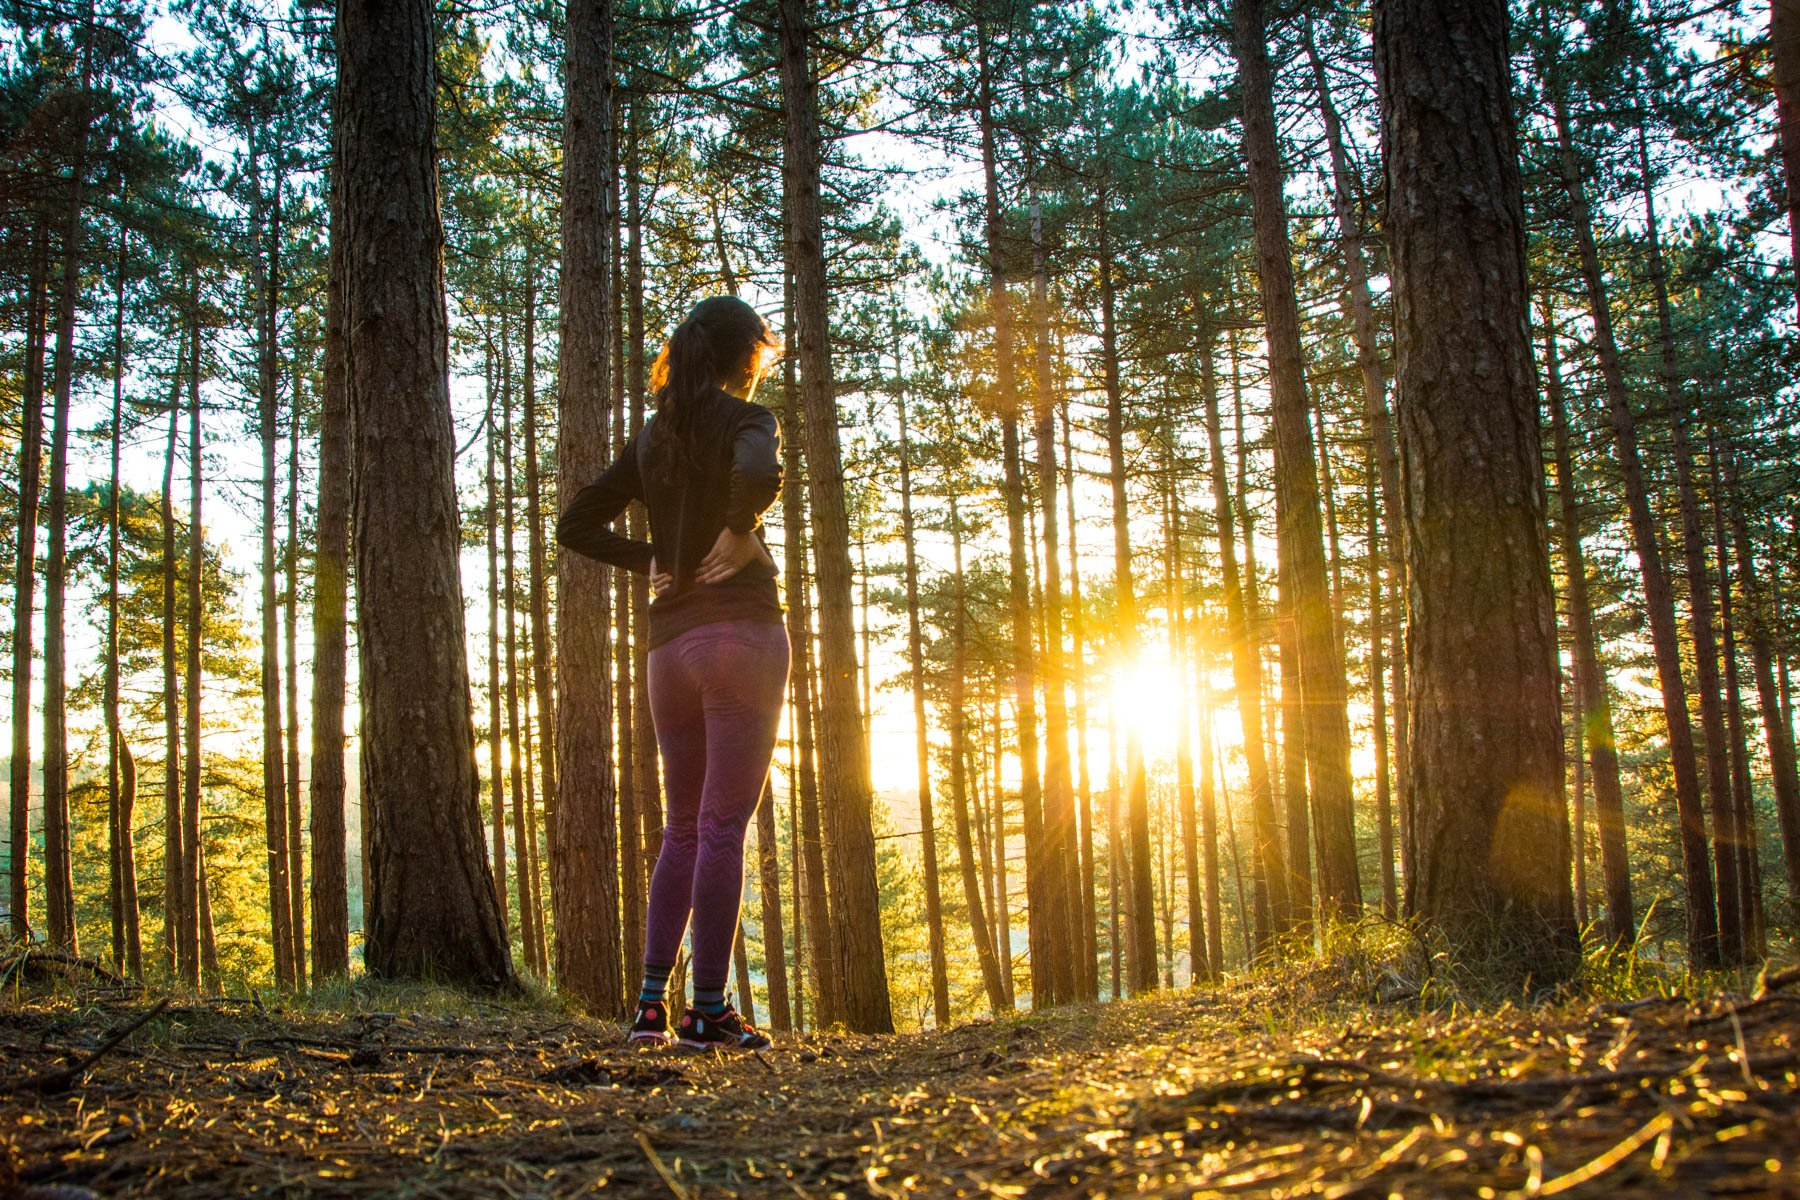 lostwithpurpose.com - 5 ways to exercise during long-term travel, no matter where you are